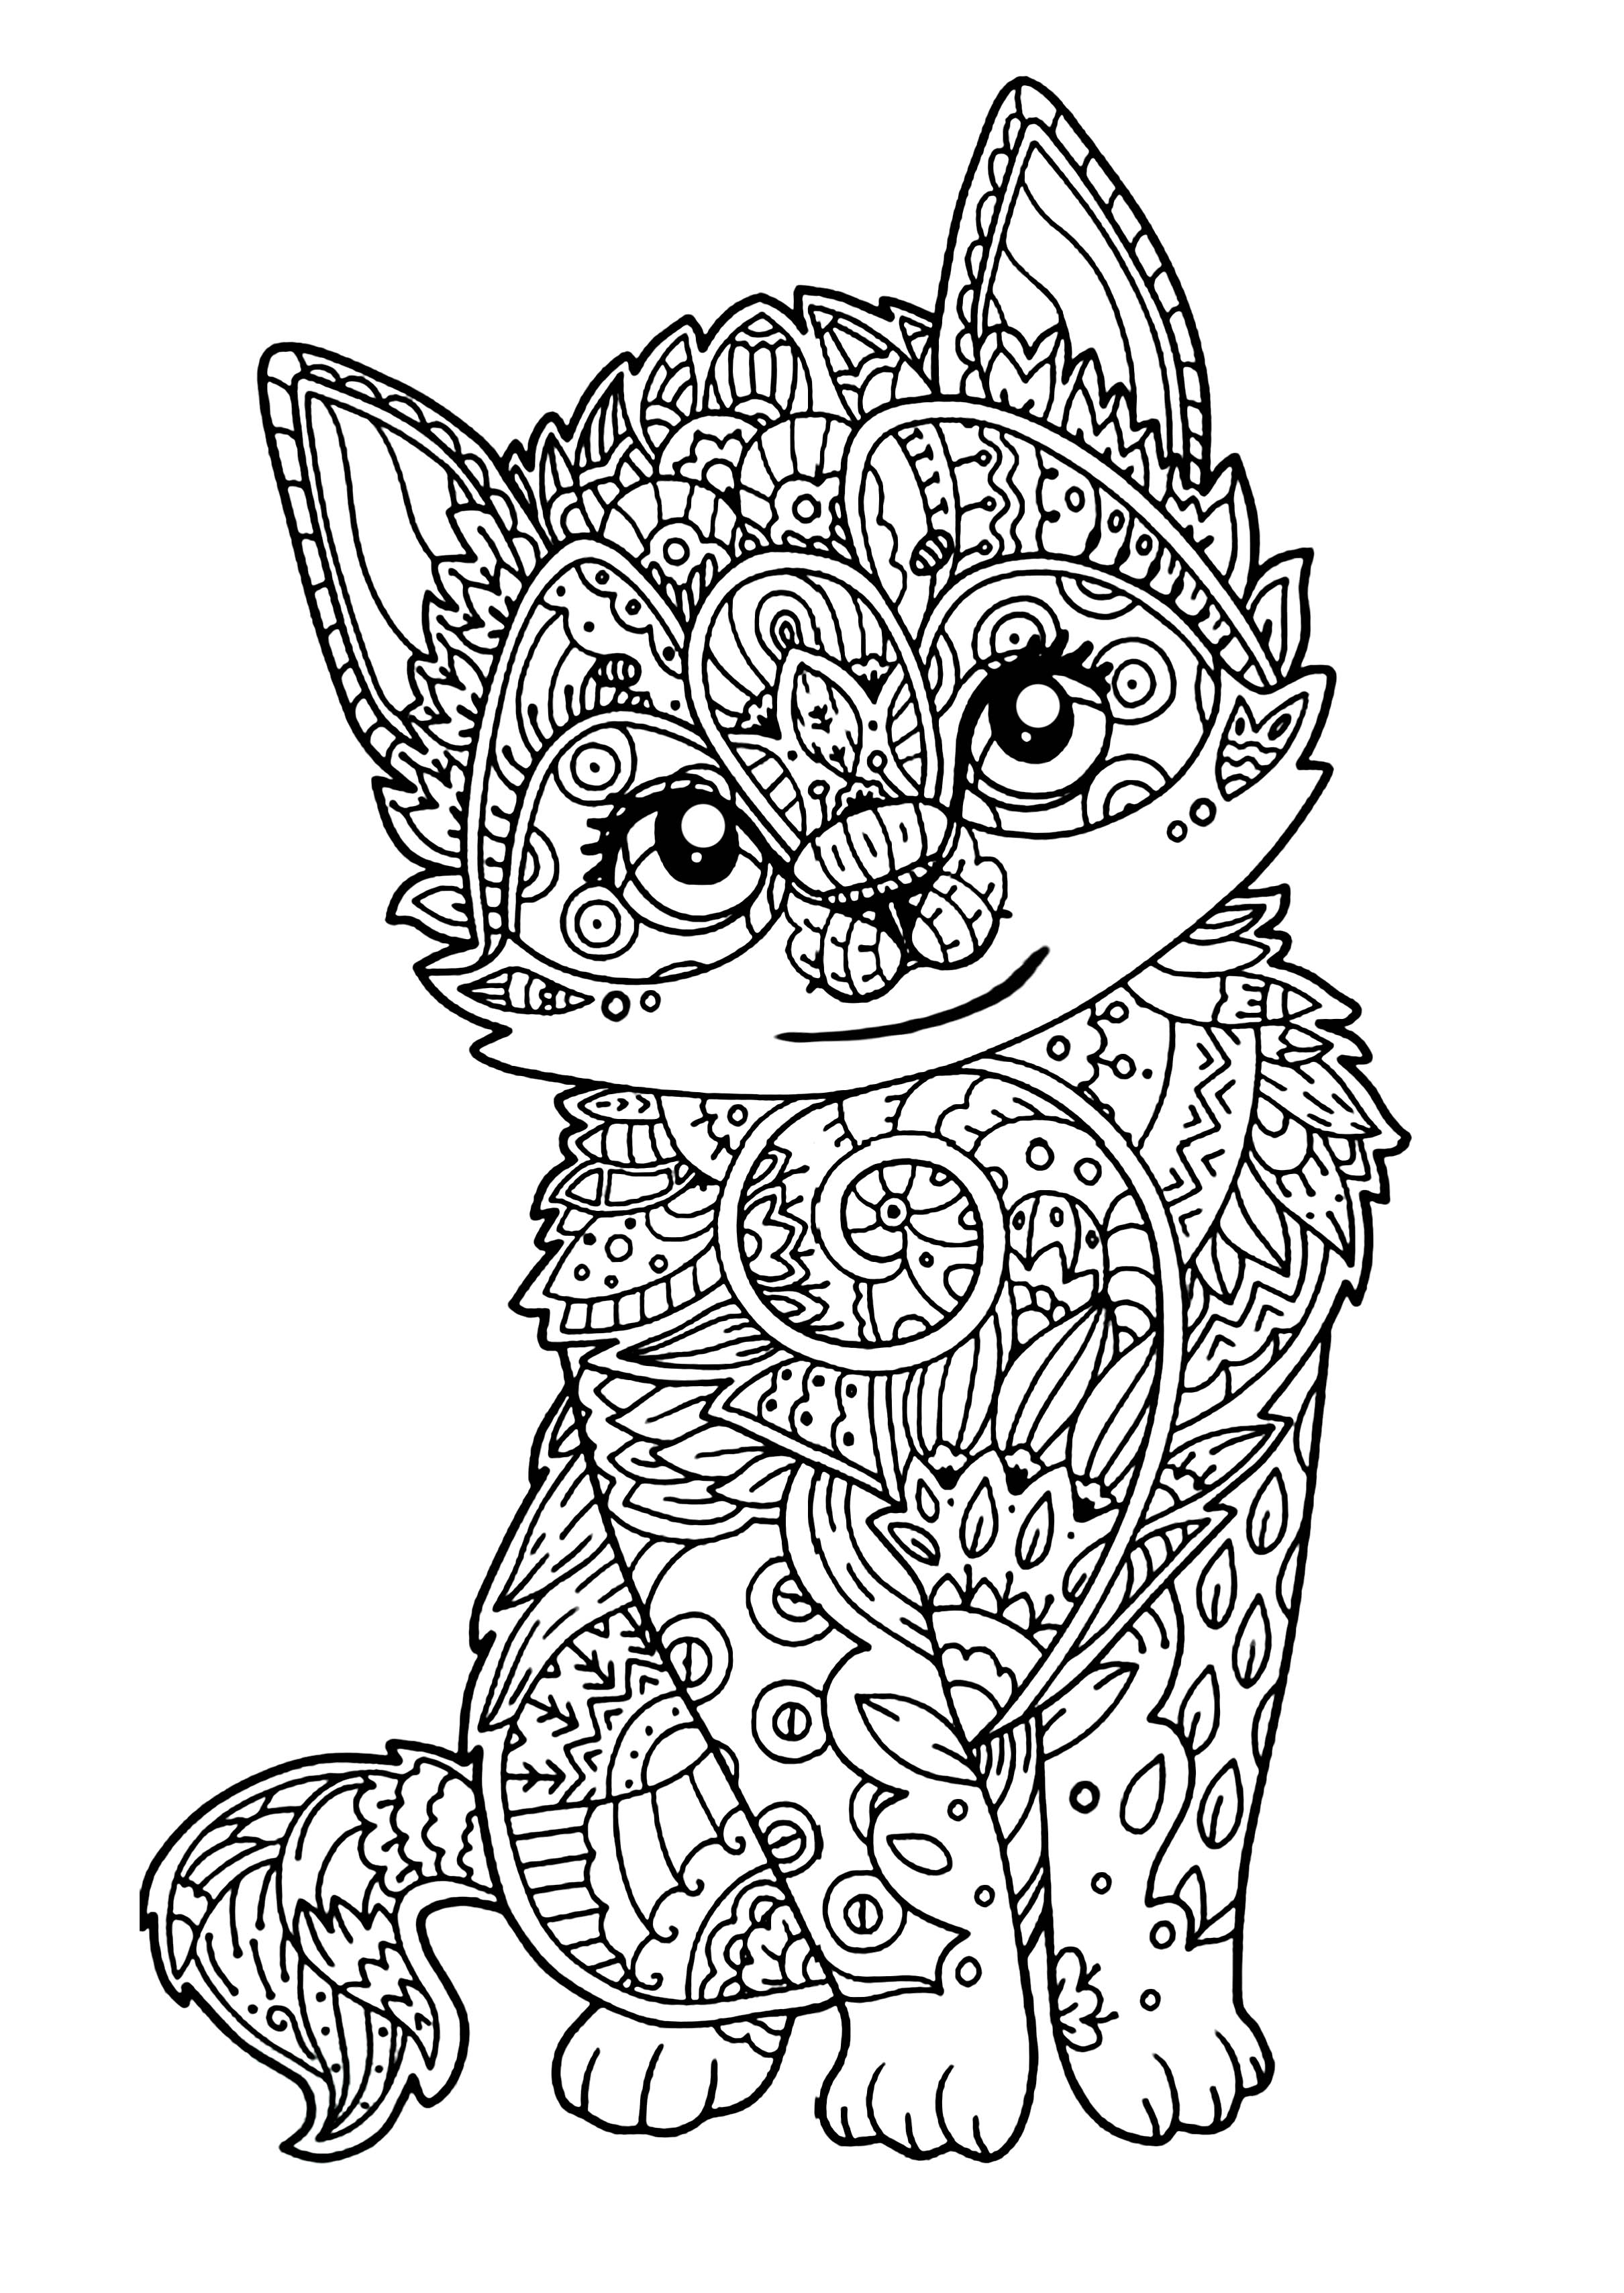 cute kitten cats adult coloring pages. Black Bedroom Furniture Sets. Home Design Ideas